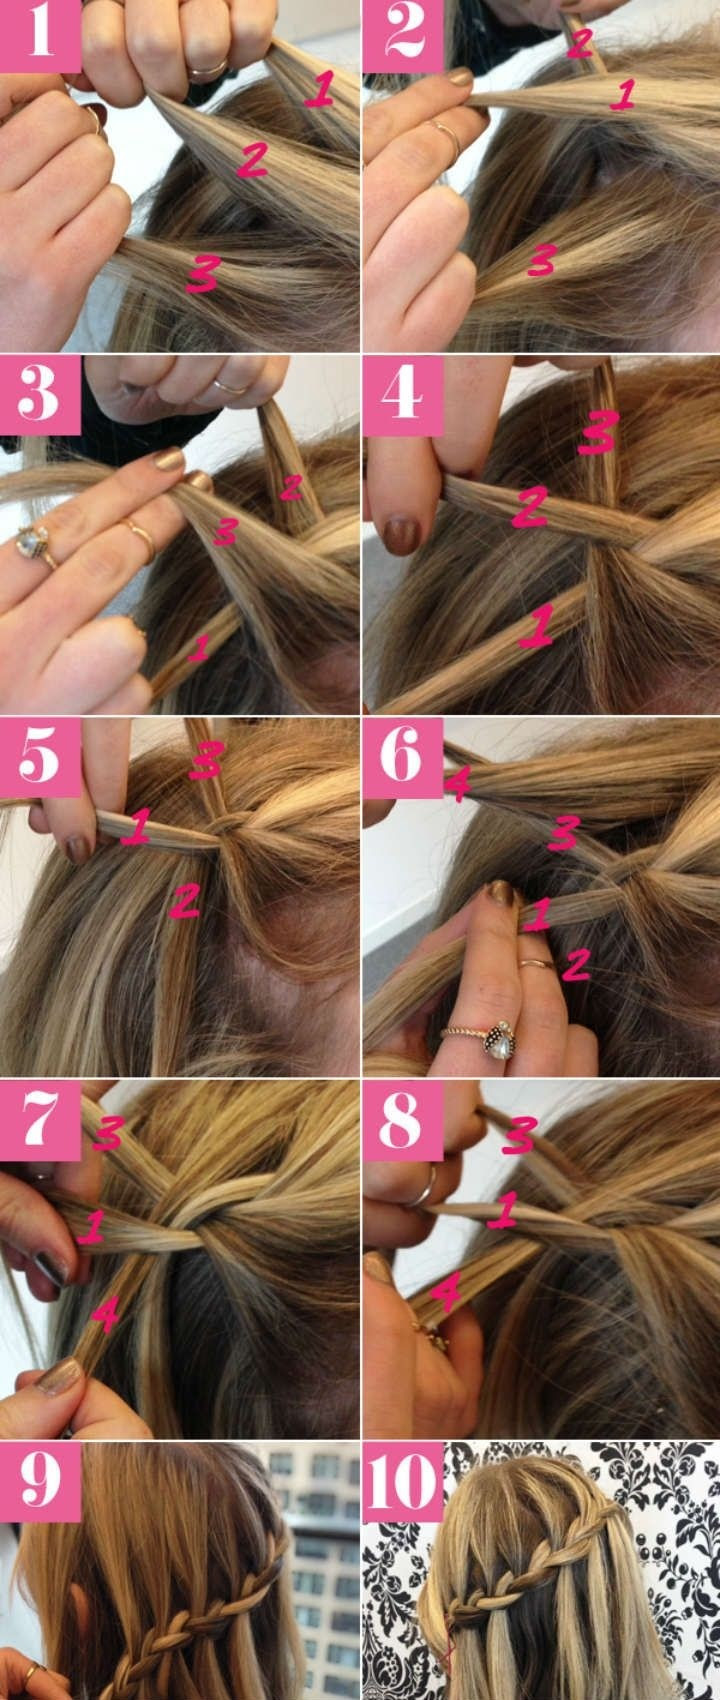 Hairstyles For Long Hair Braids Steps PictureFuneral Program Designs